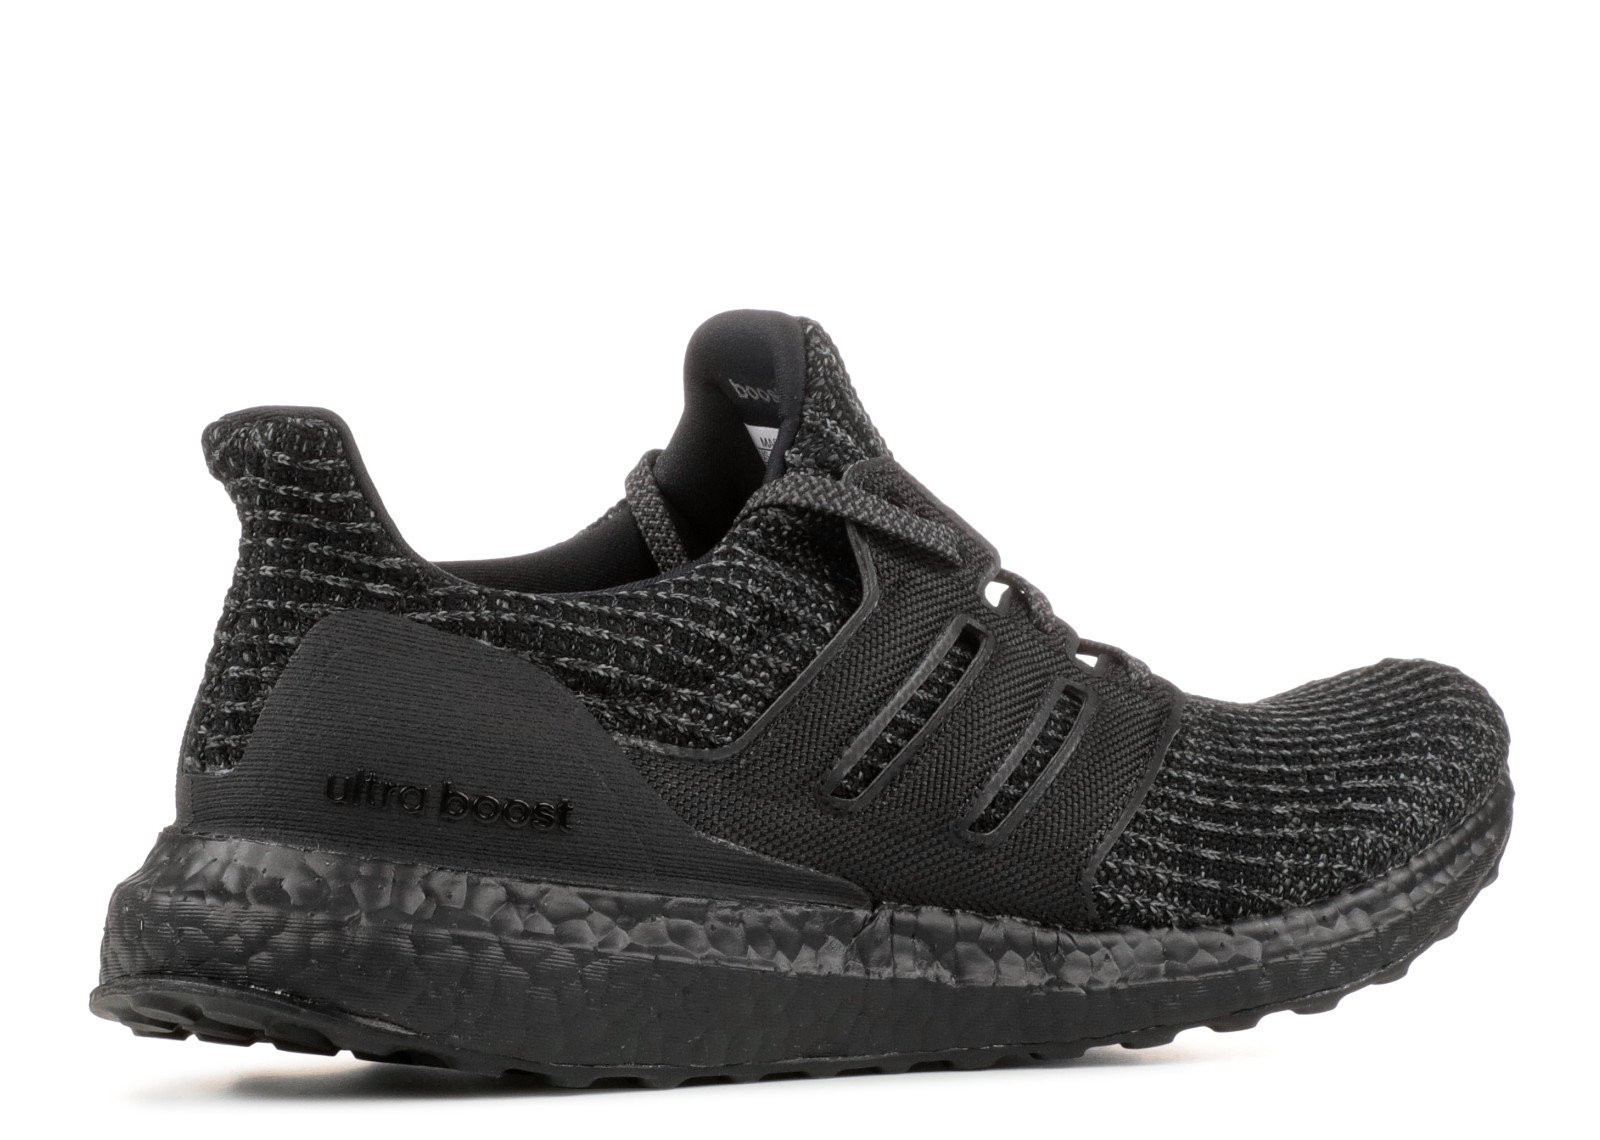 adidas Men's Ultraboost Trail Running Shoes